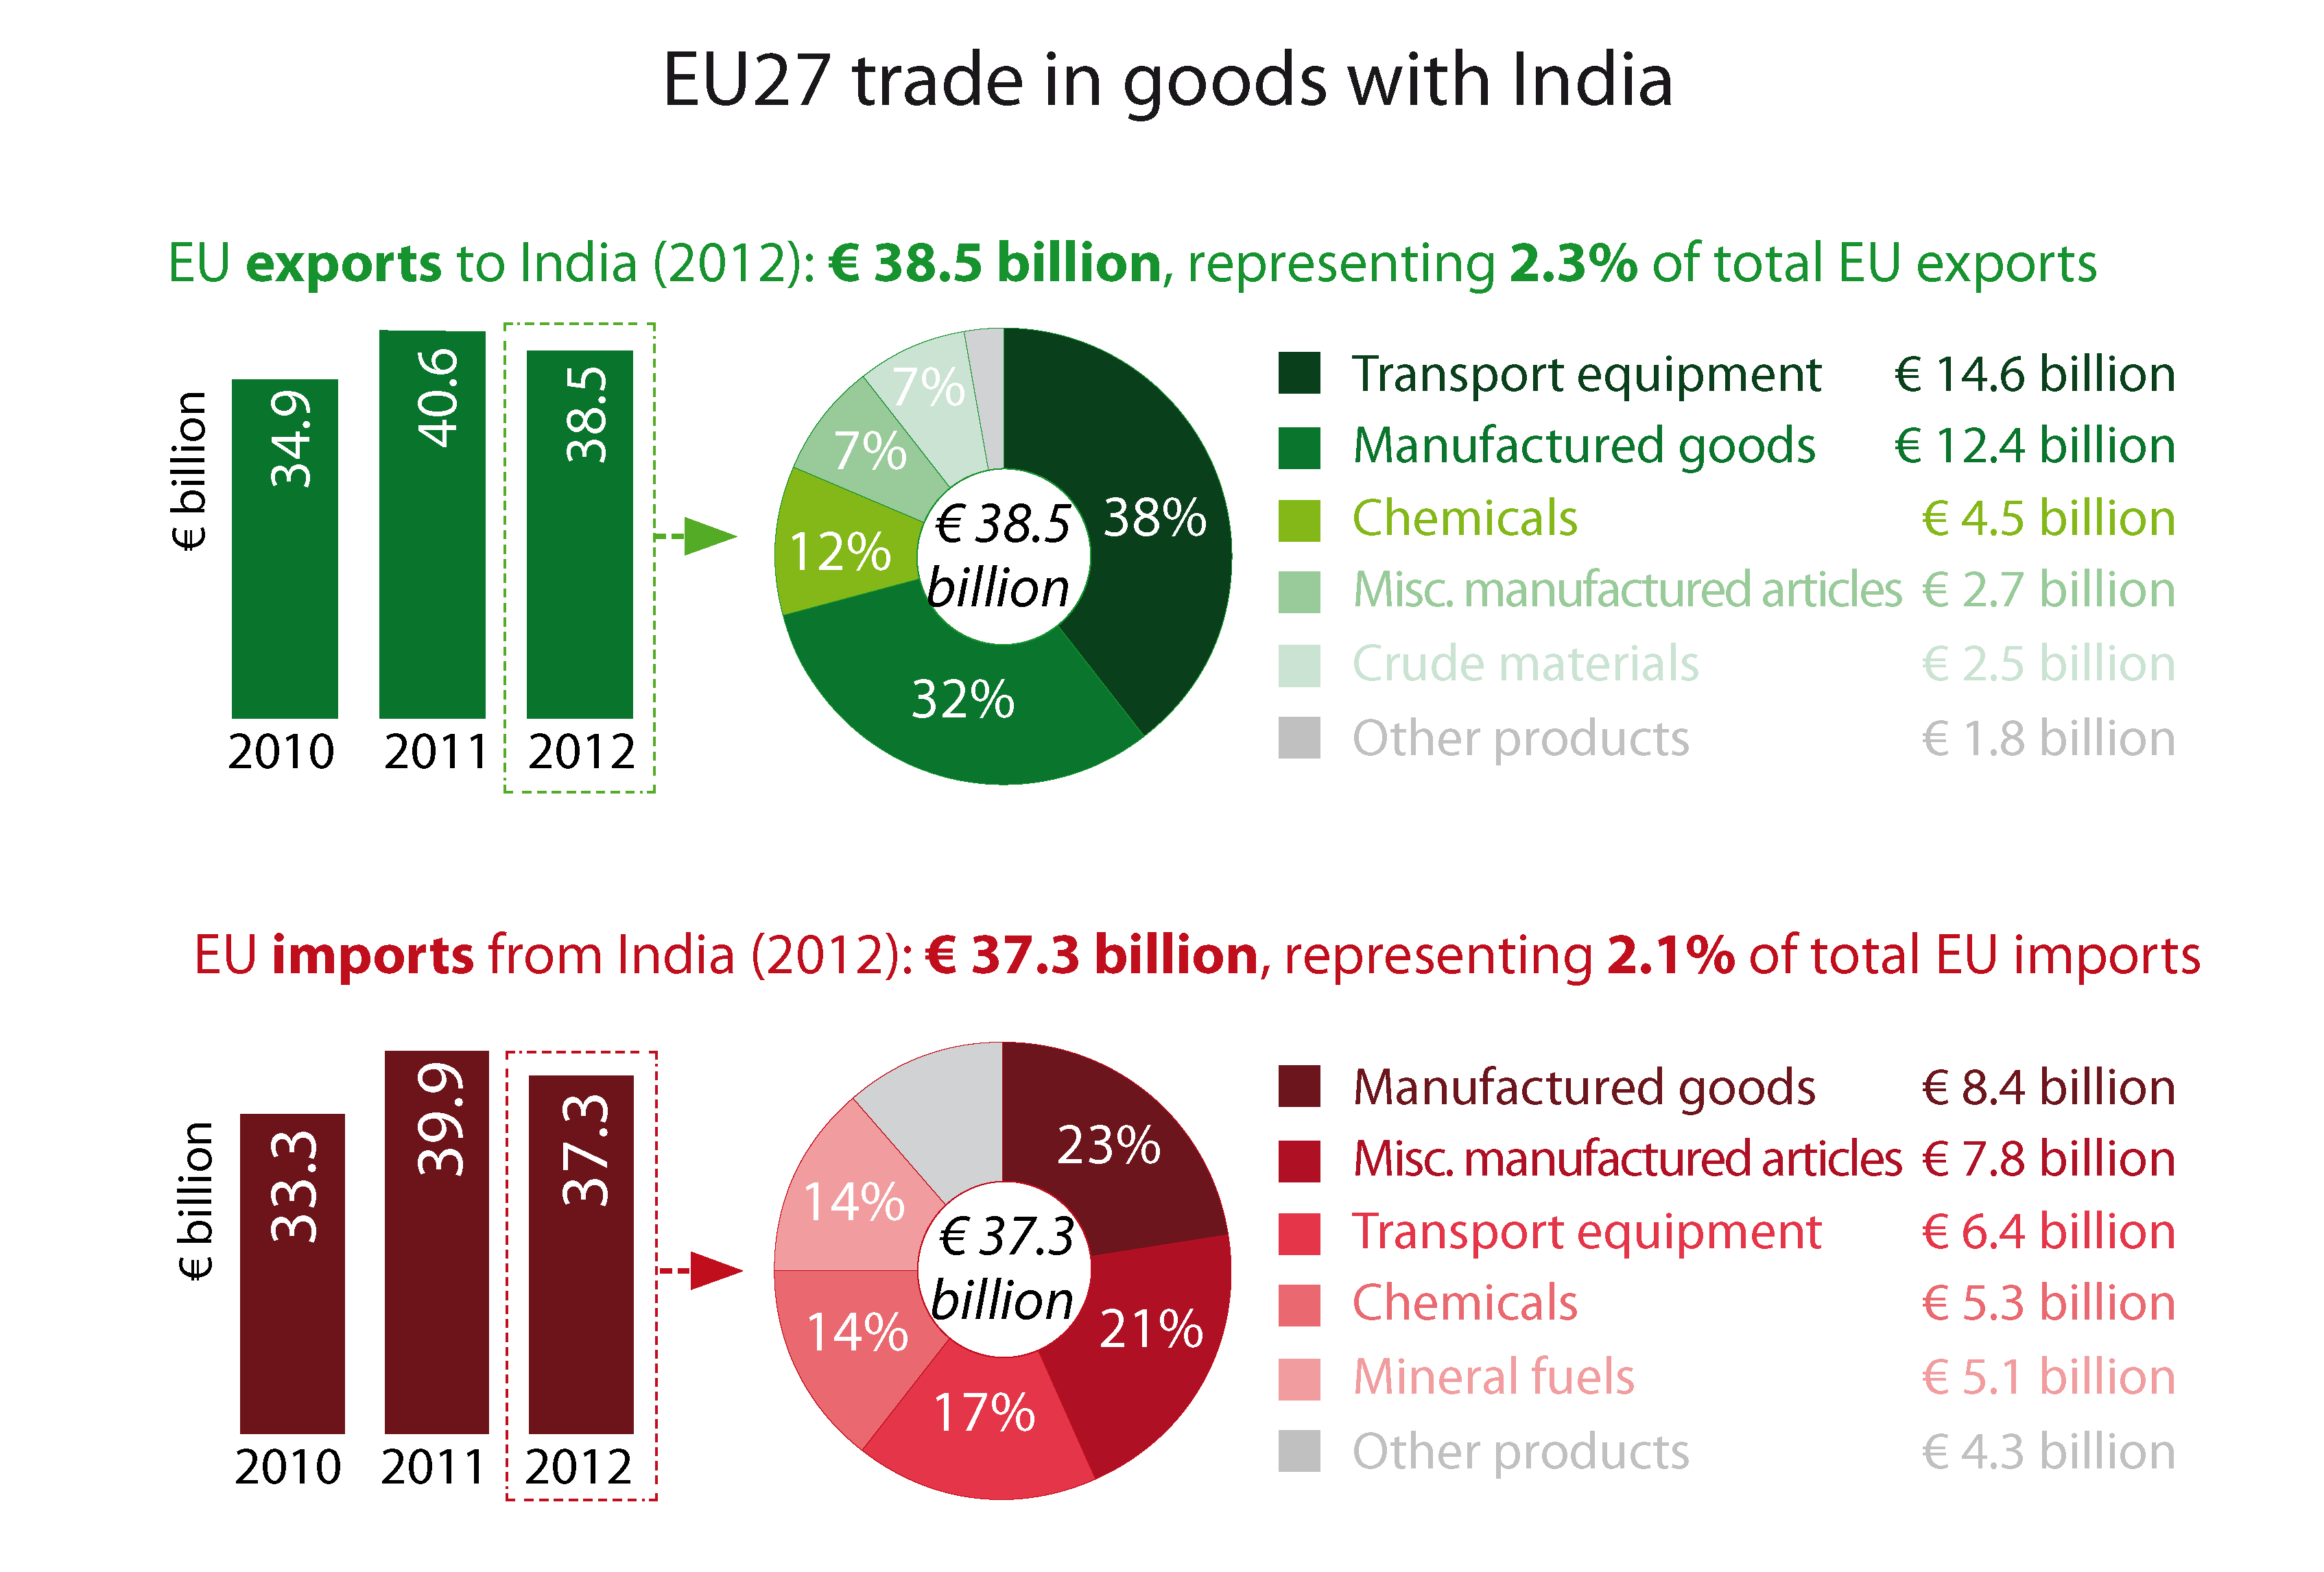 Graphics on External trade | European Parliamentary Research Service